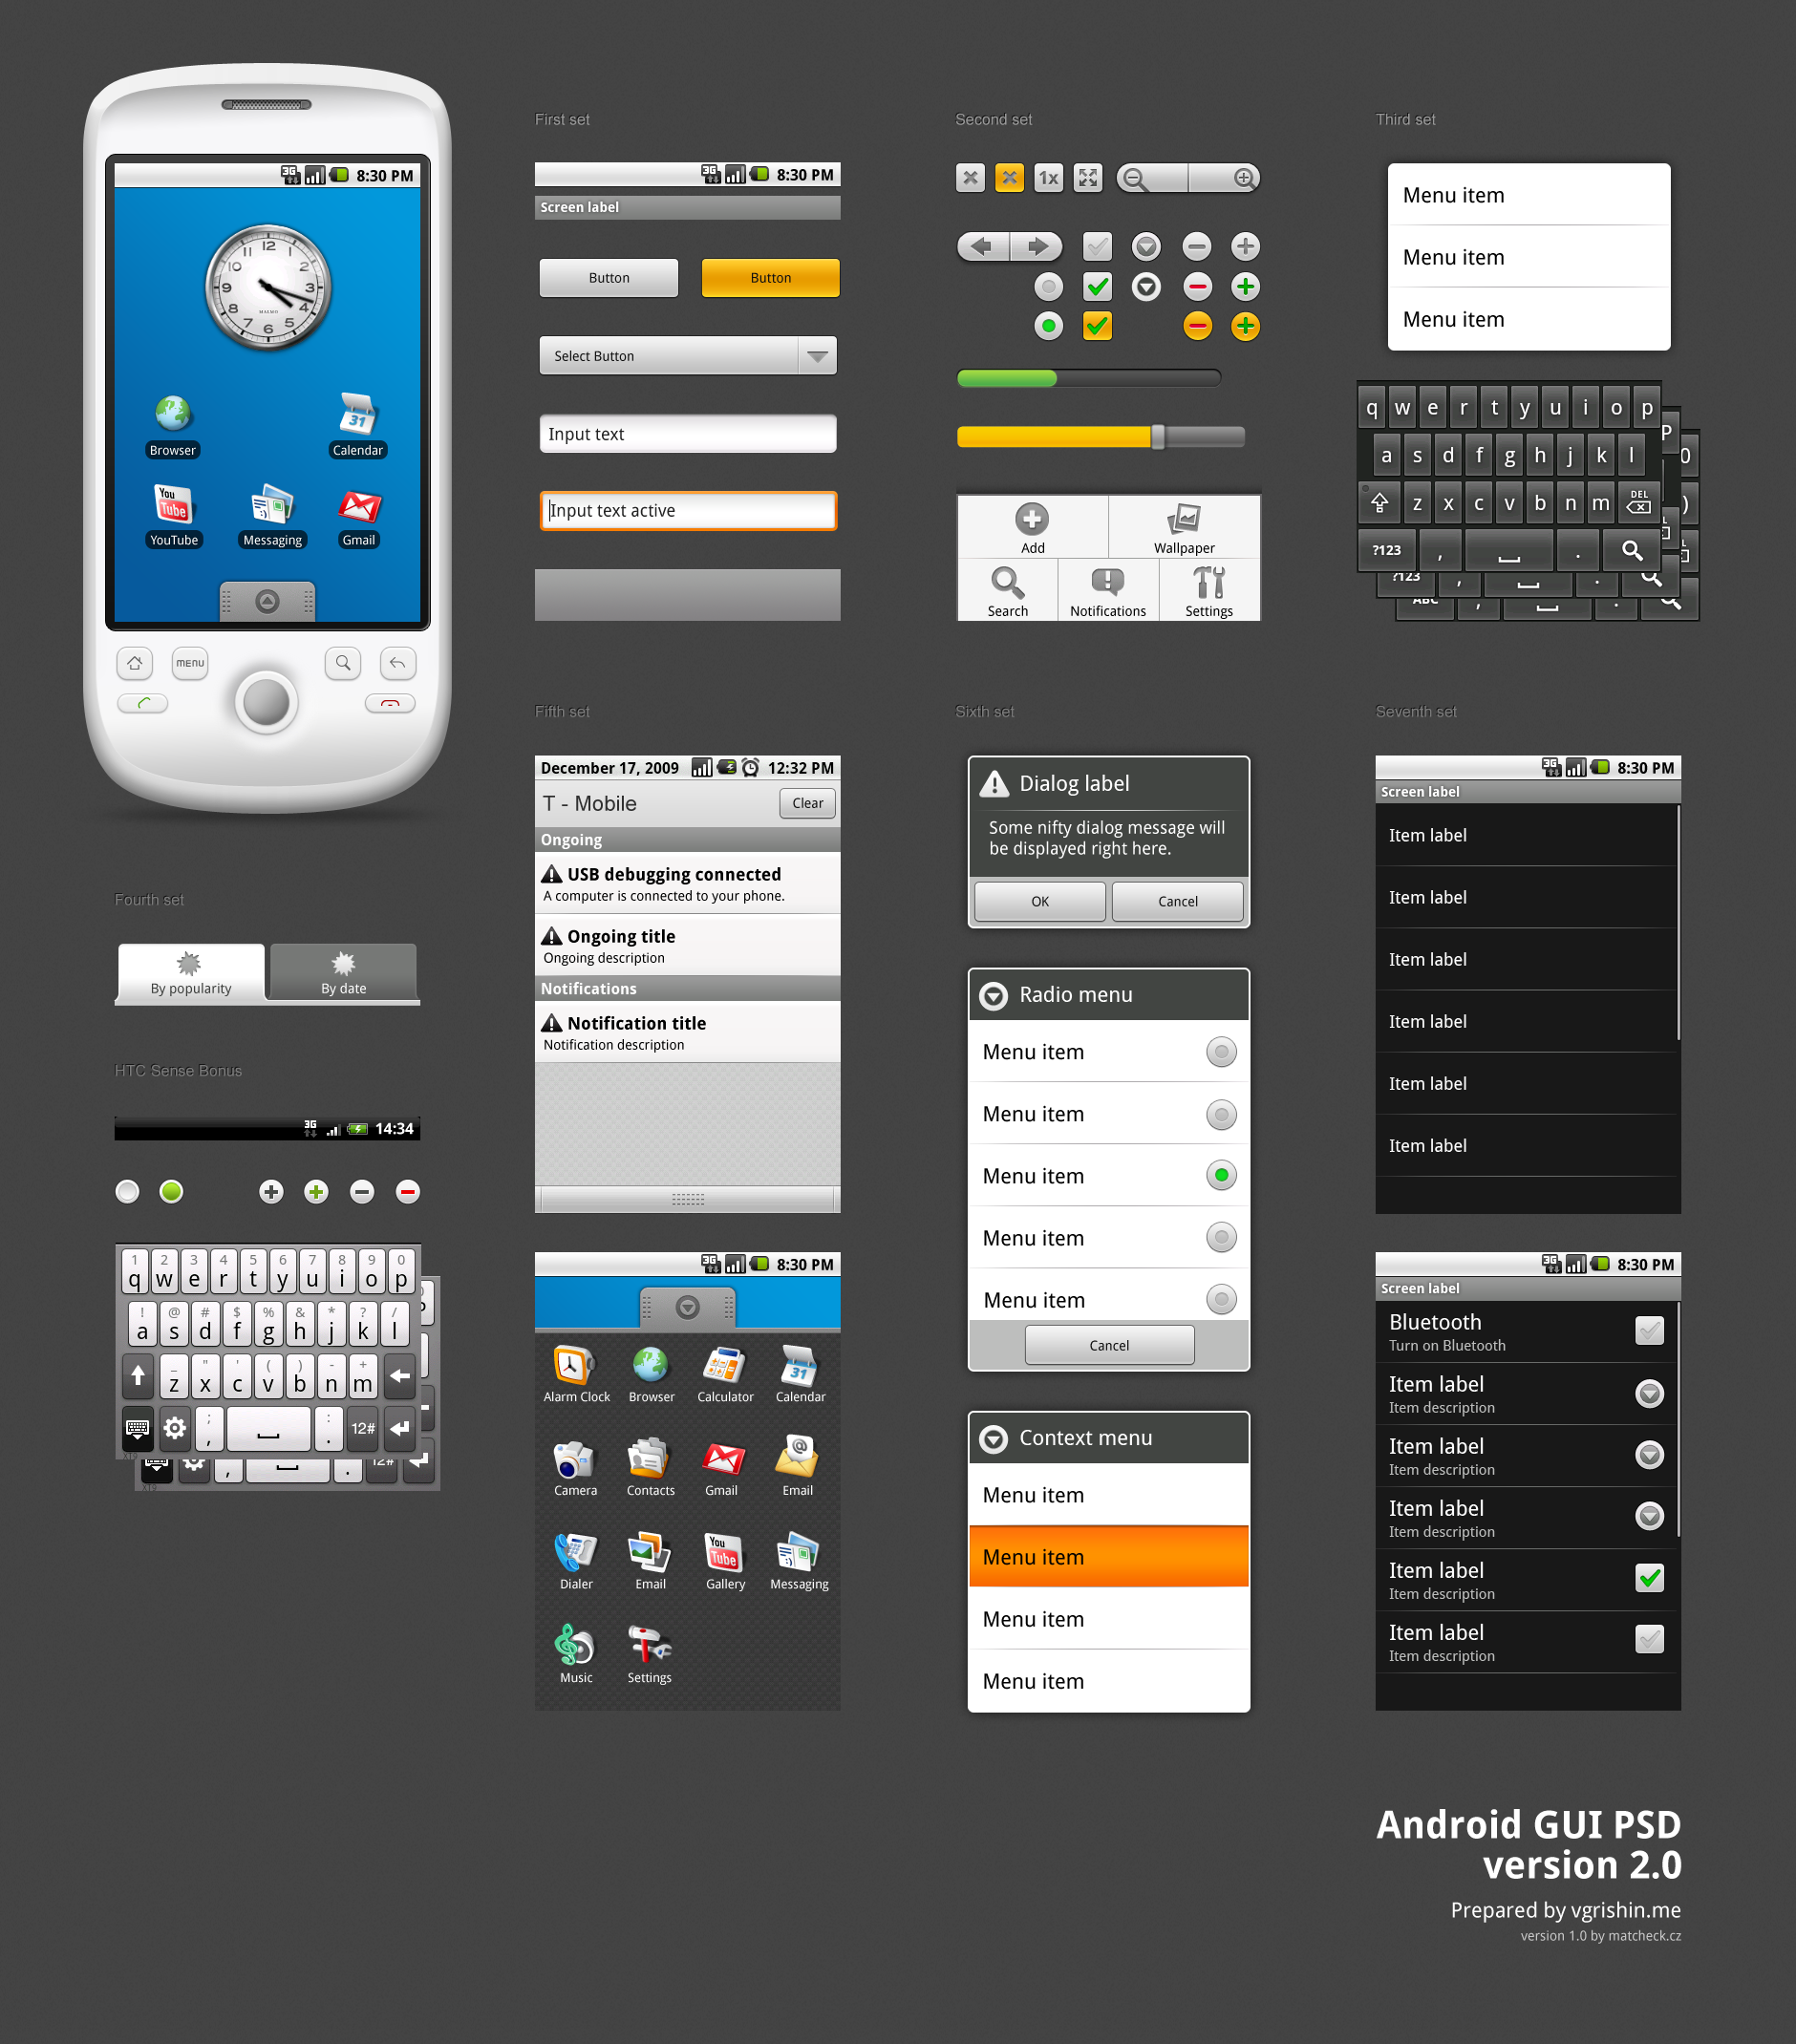 12 Android GUI PSD Images